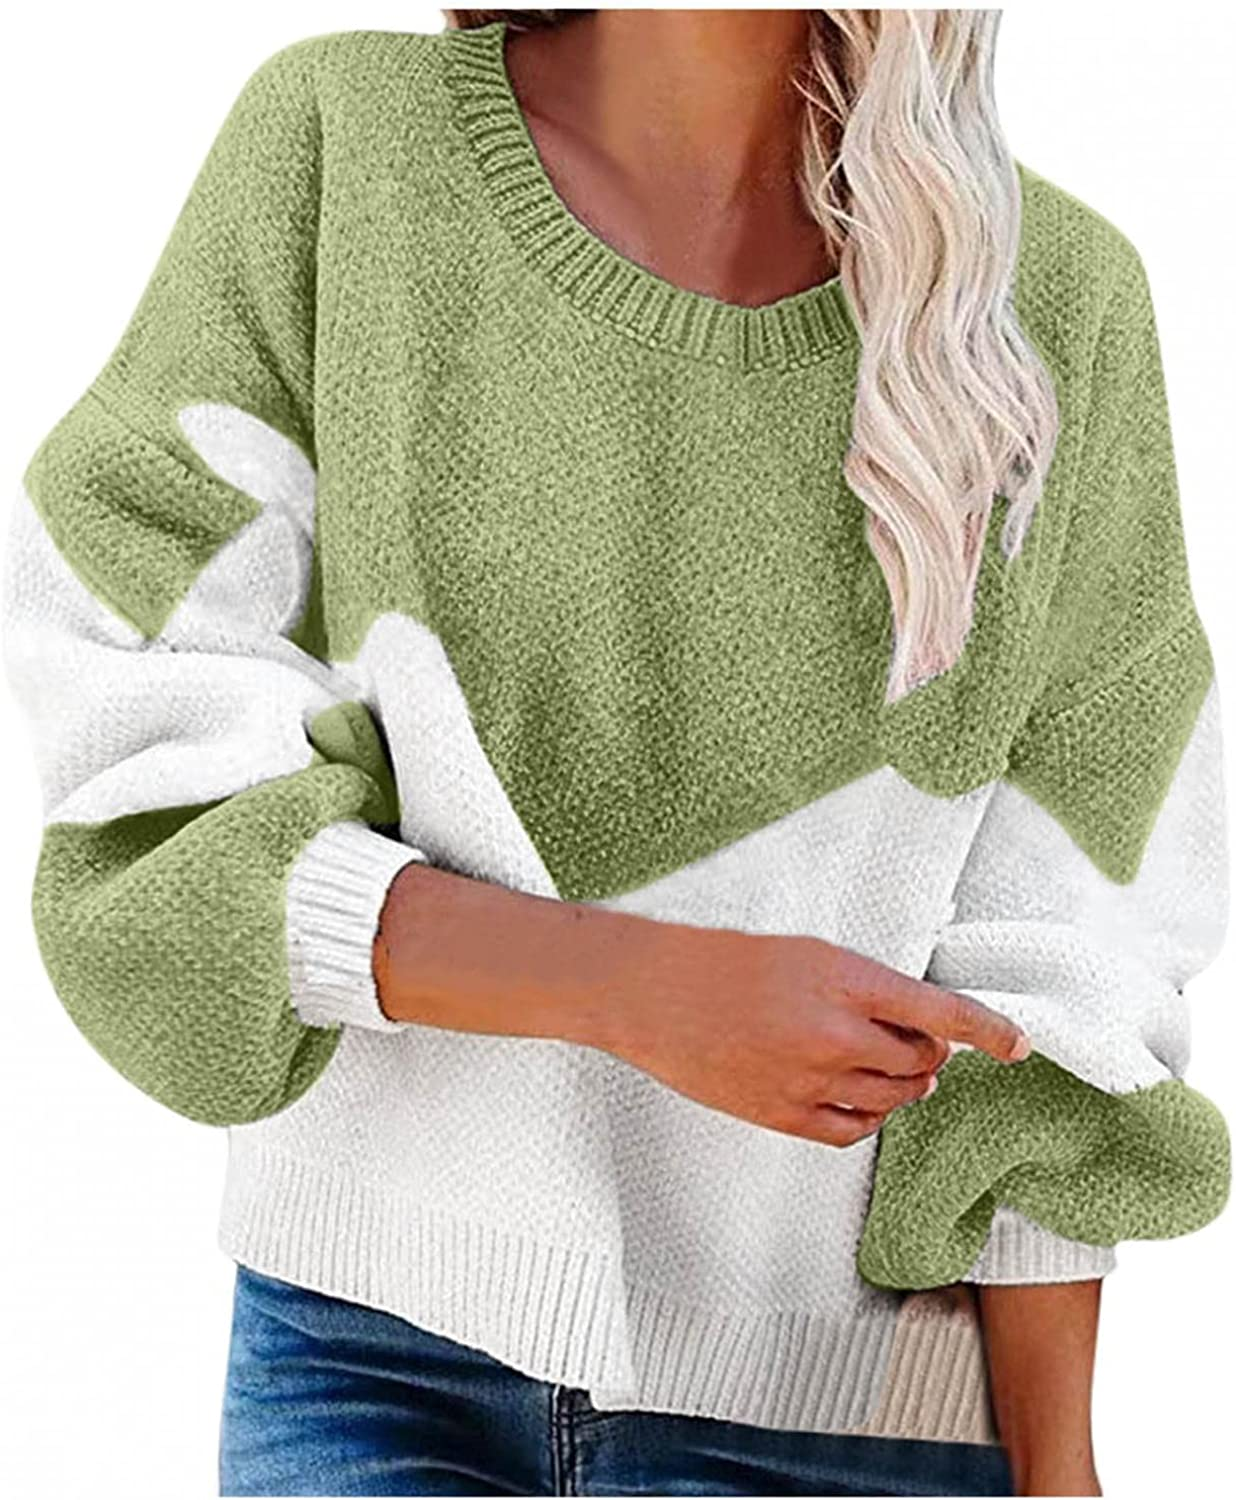 Yamart Women's Sweaters Crew Neck Lantern Sleeve Oversized Casual Color Block Pullover Sweater